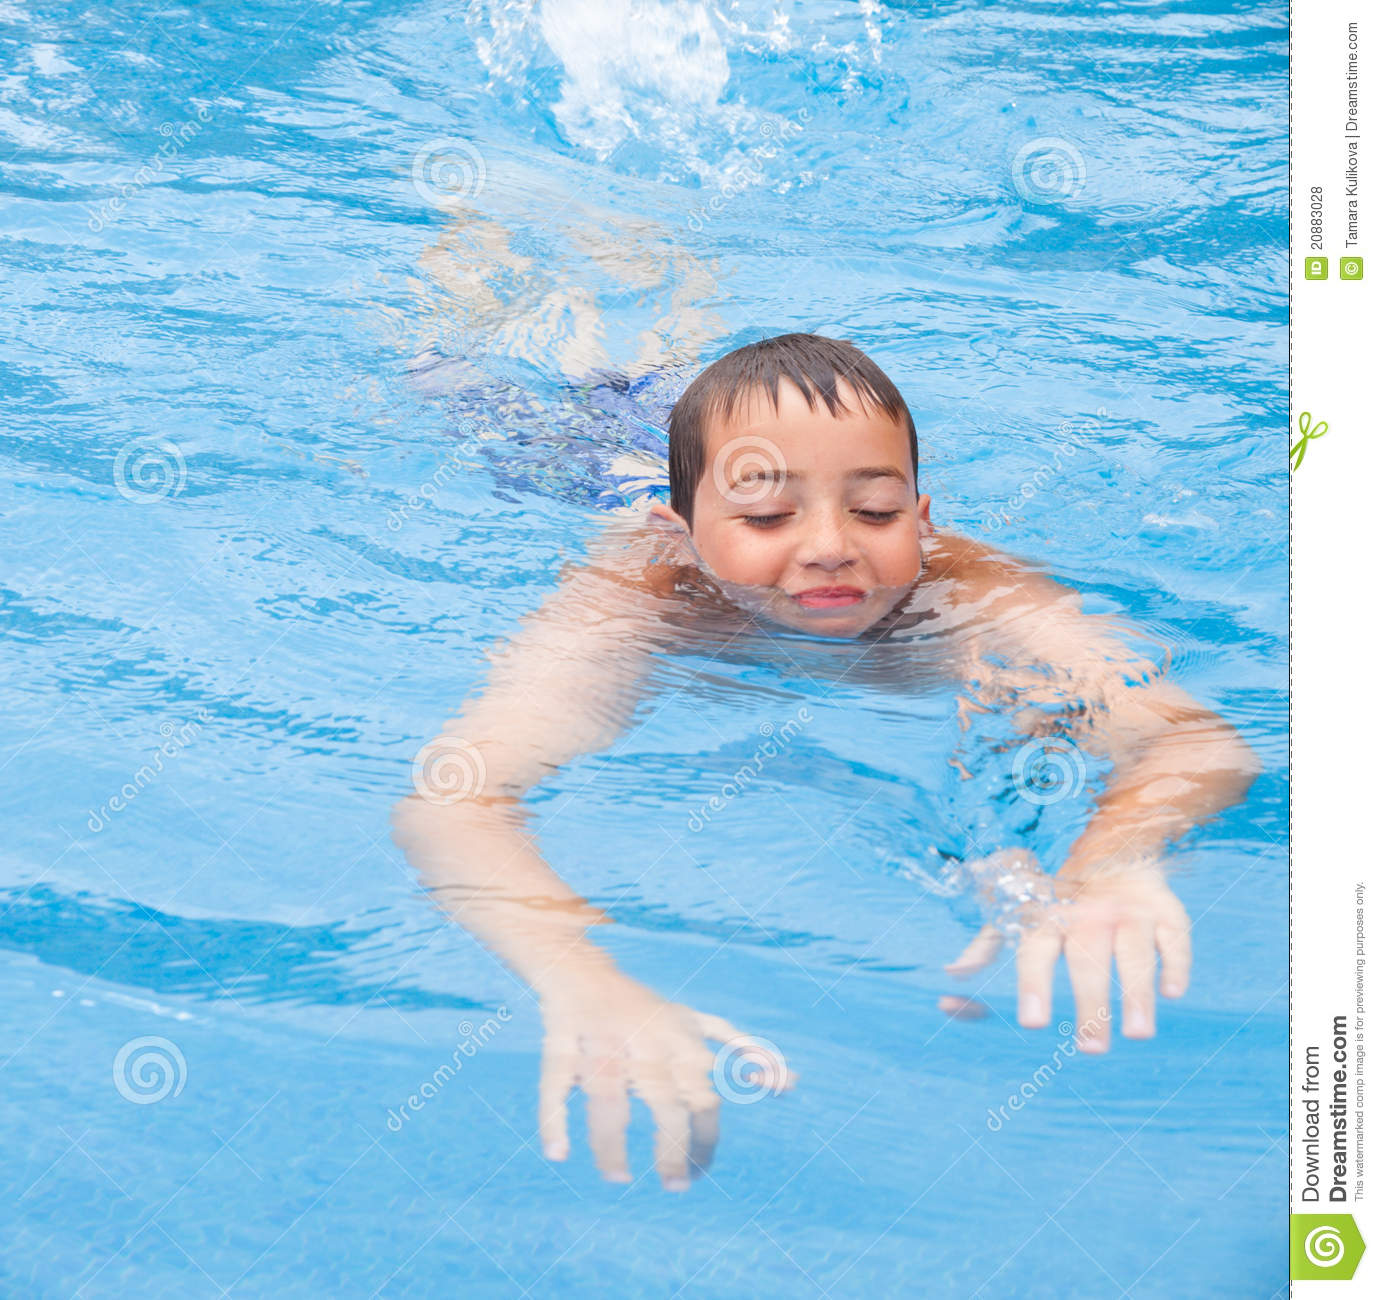 Swimming Pool Background Stock Photo Image Of Climate 20883028